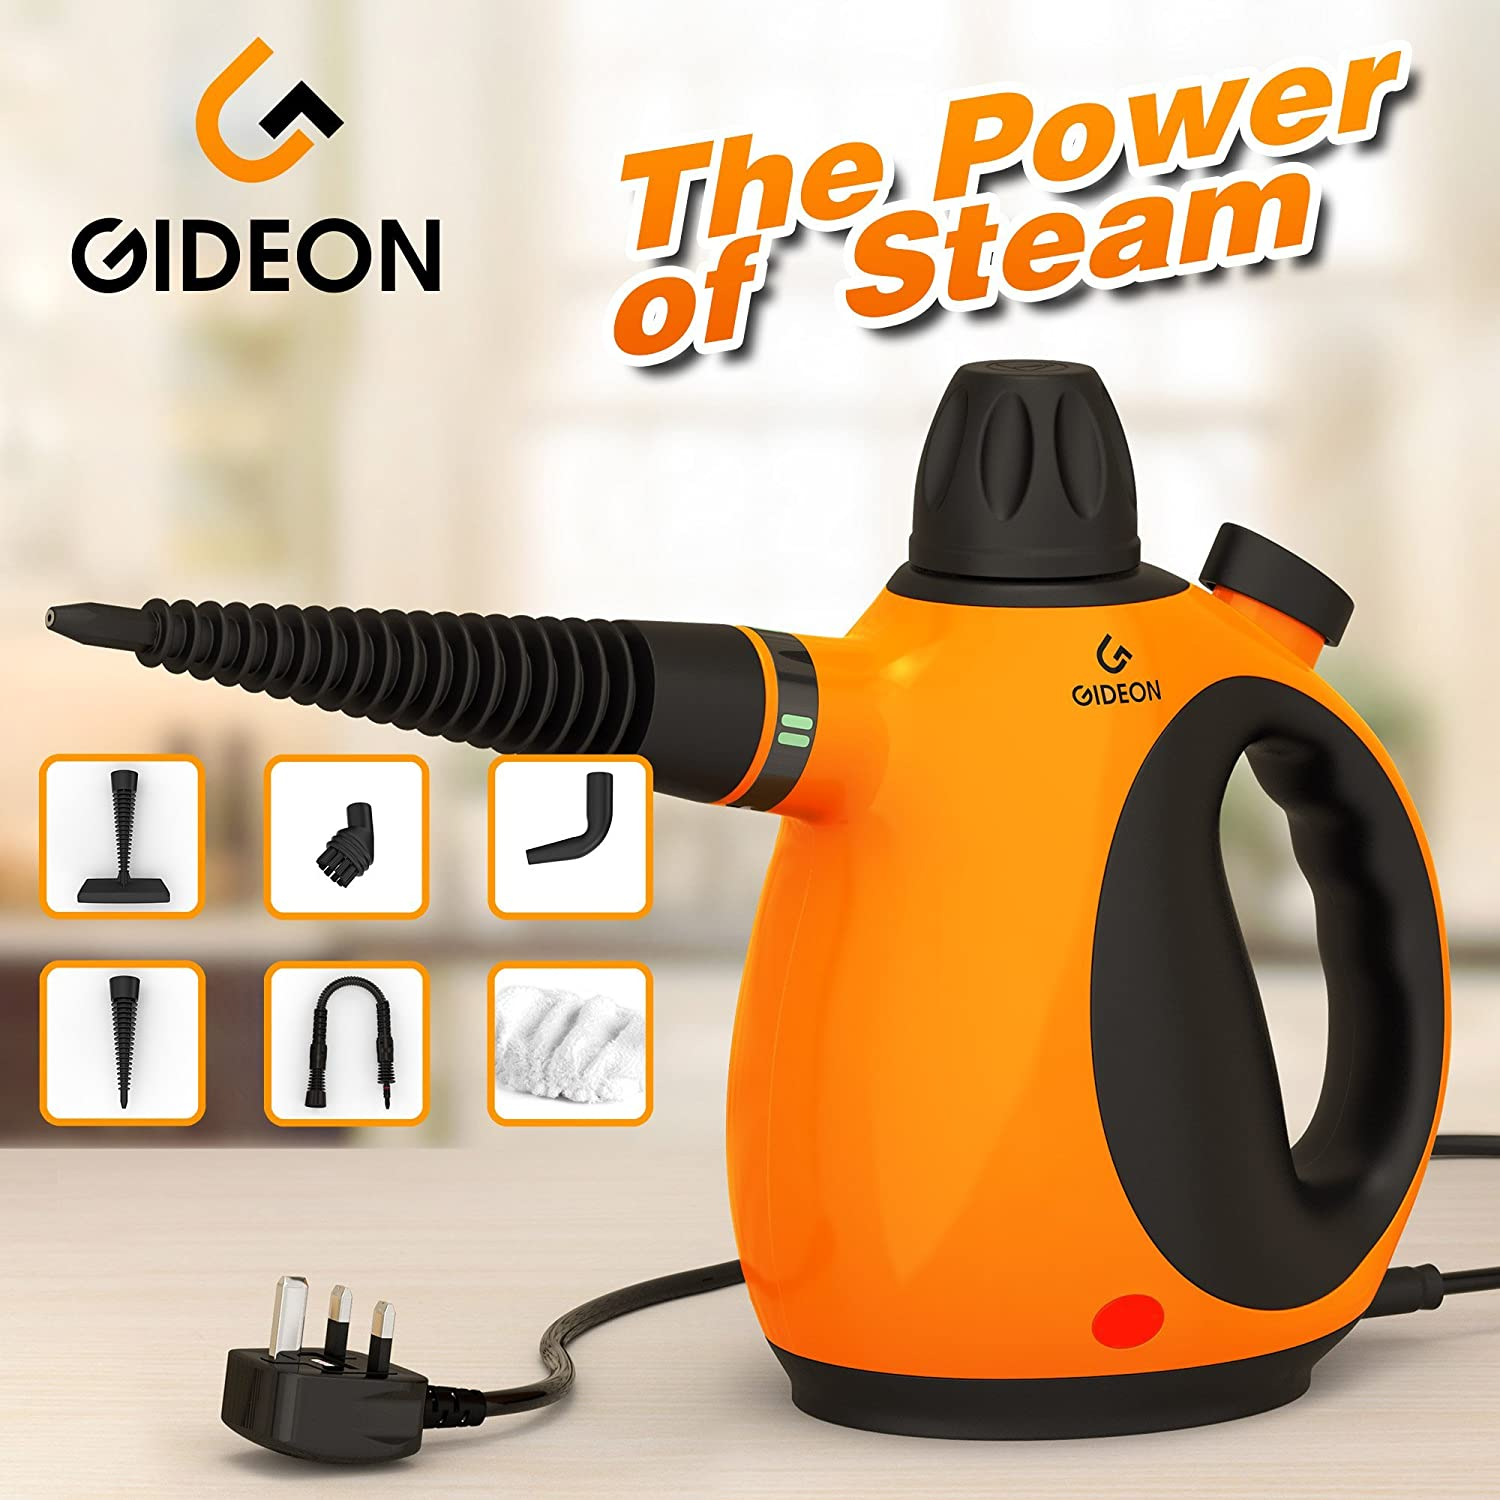 Gideontm Handheld Pressurized Steam Cleaner And Diagram Parts List For Model 1960 Bissellparts Wetcarpetcleaner Sanitizer Powerful Multi Purpose Steamer Removes Stains Grease Mold Etc Disinfects